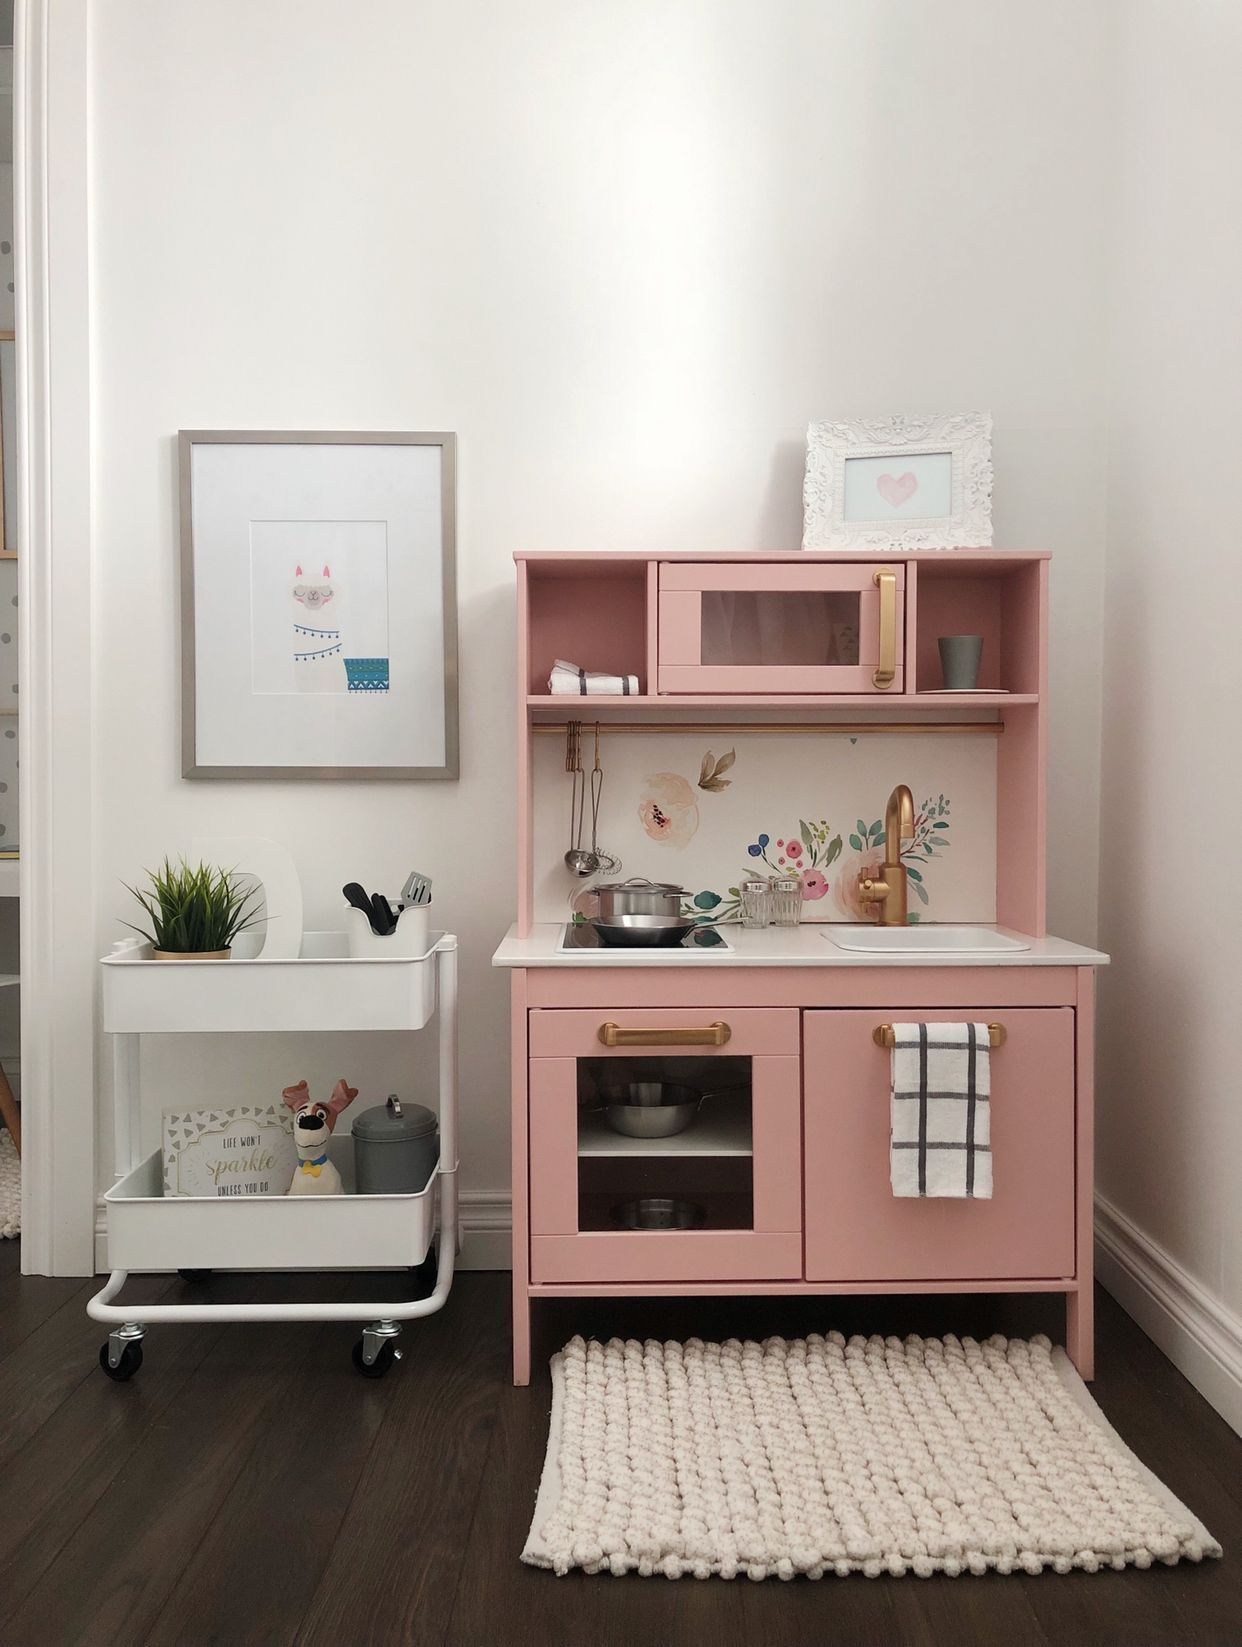 15 IKEA Toys Ideas Every Parent Should Know images